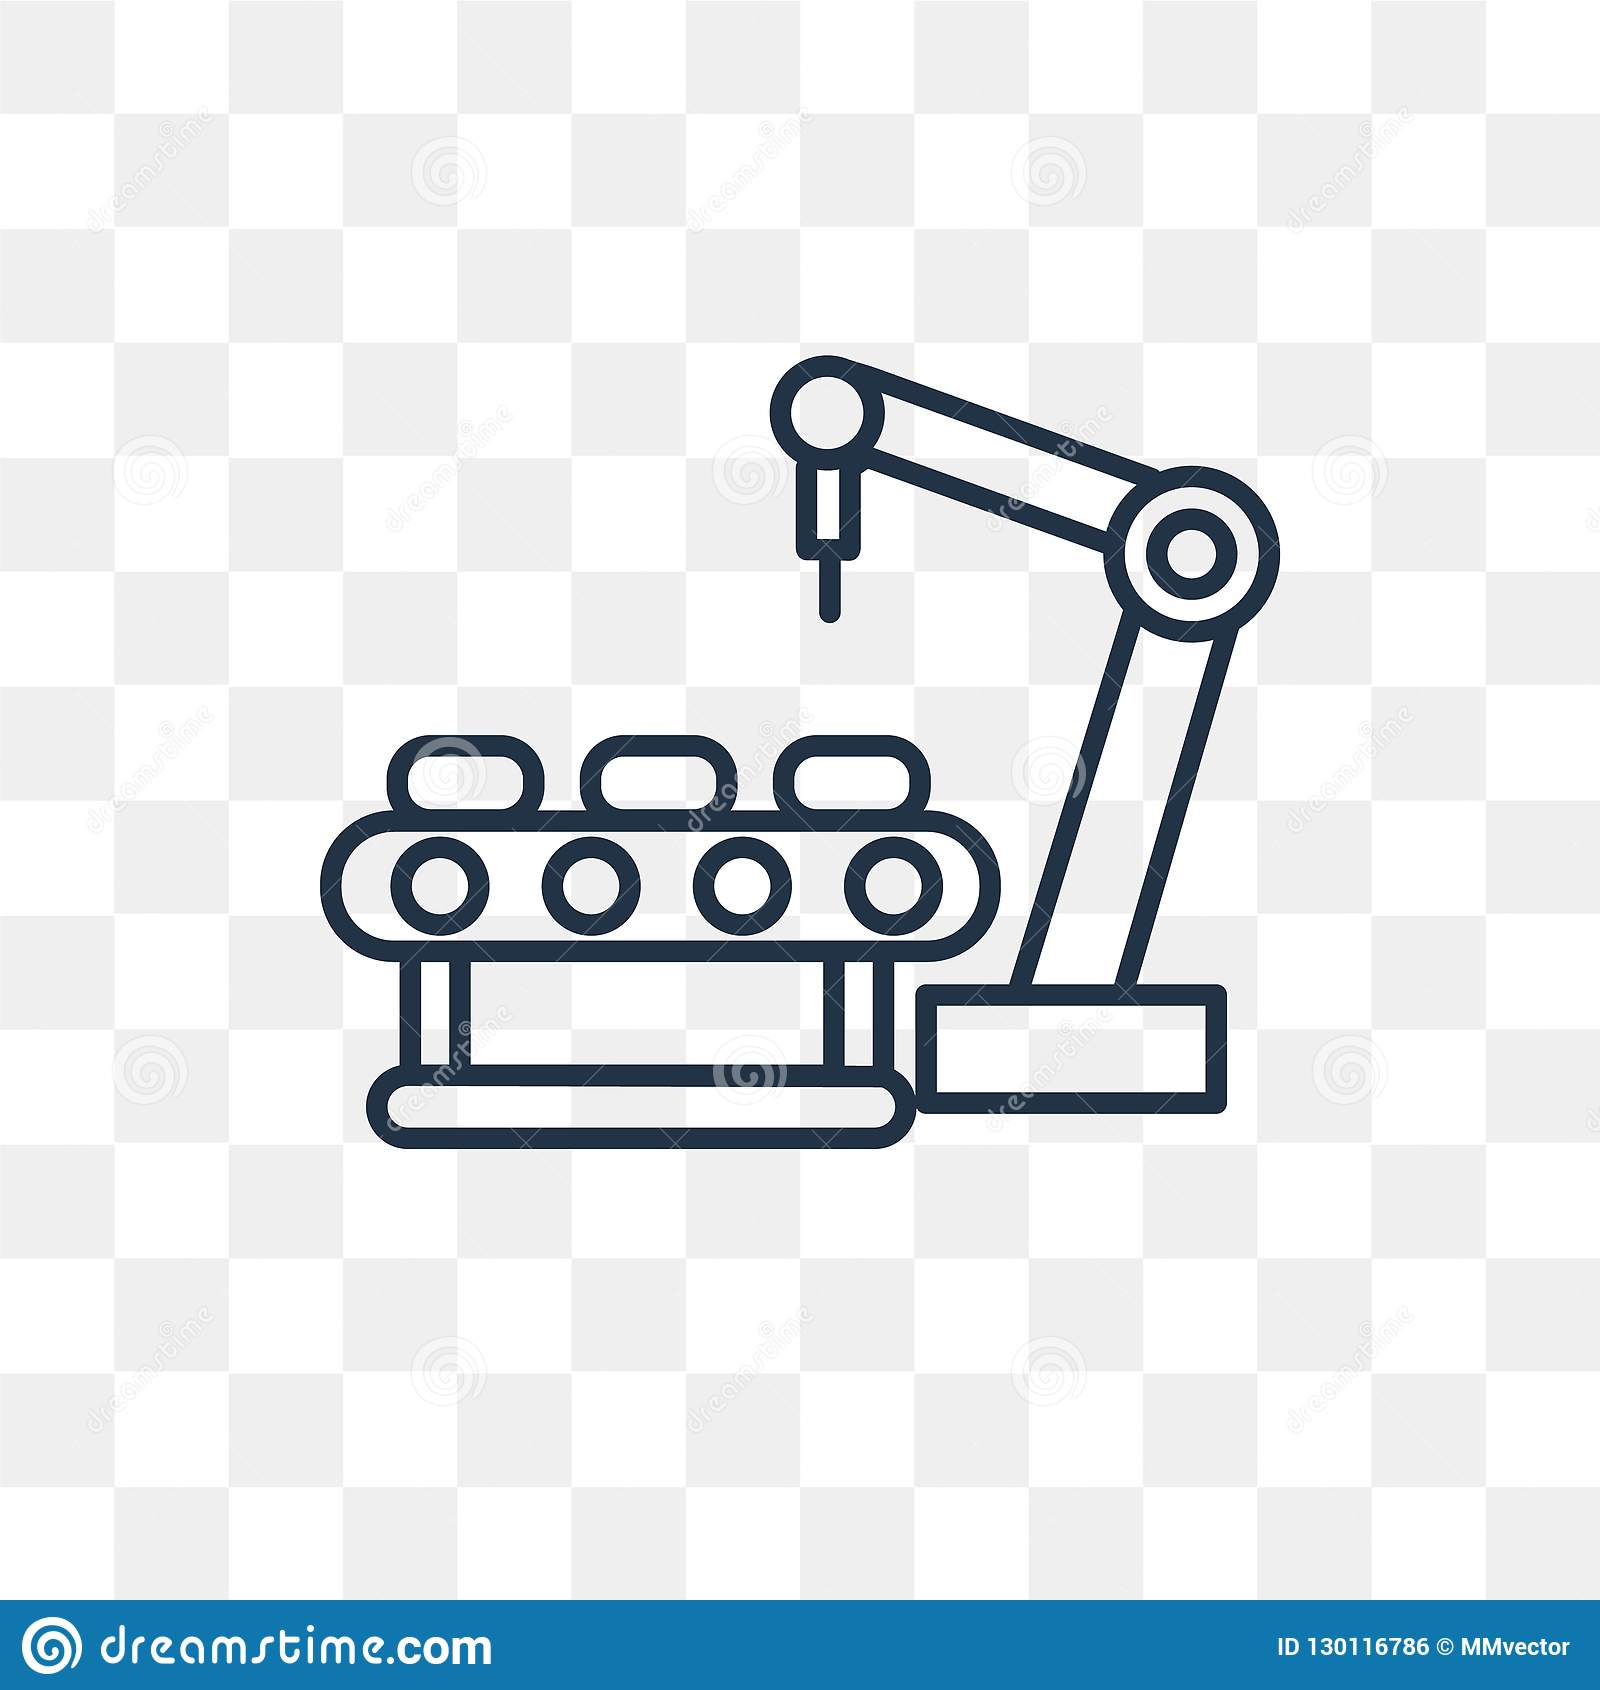 Industrial Robot Vector Icon Isolated On Transparent